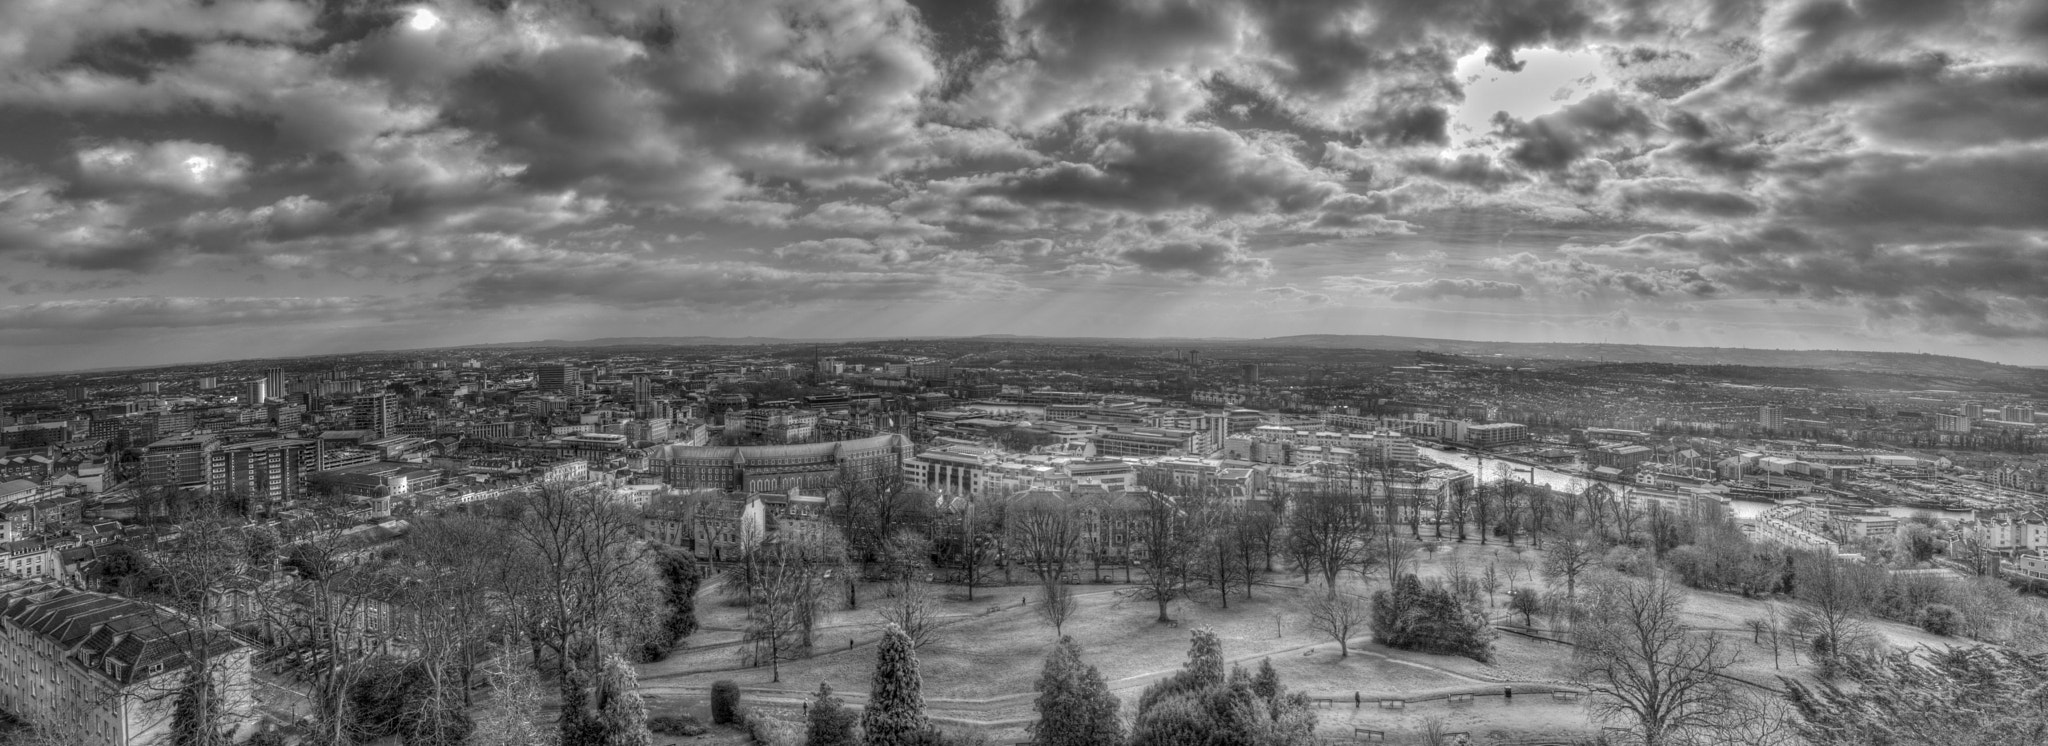 Photograph City of Bristol by Pete Griffiths on 500px